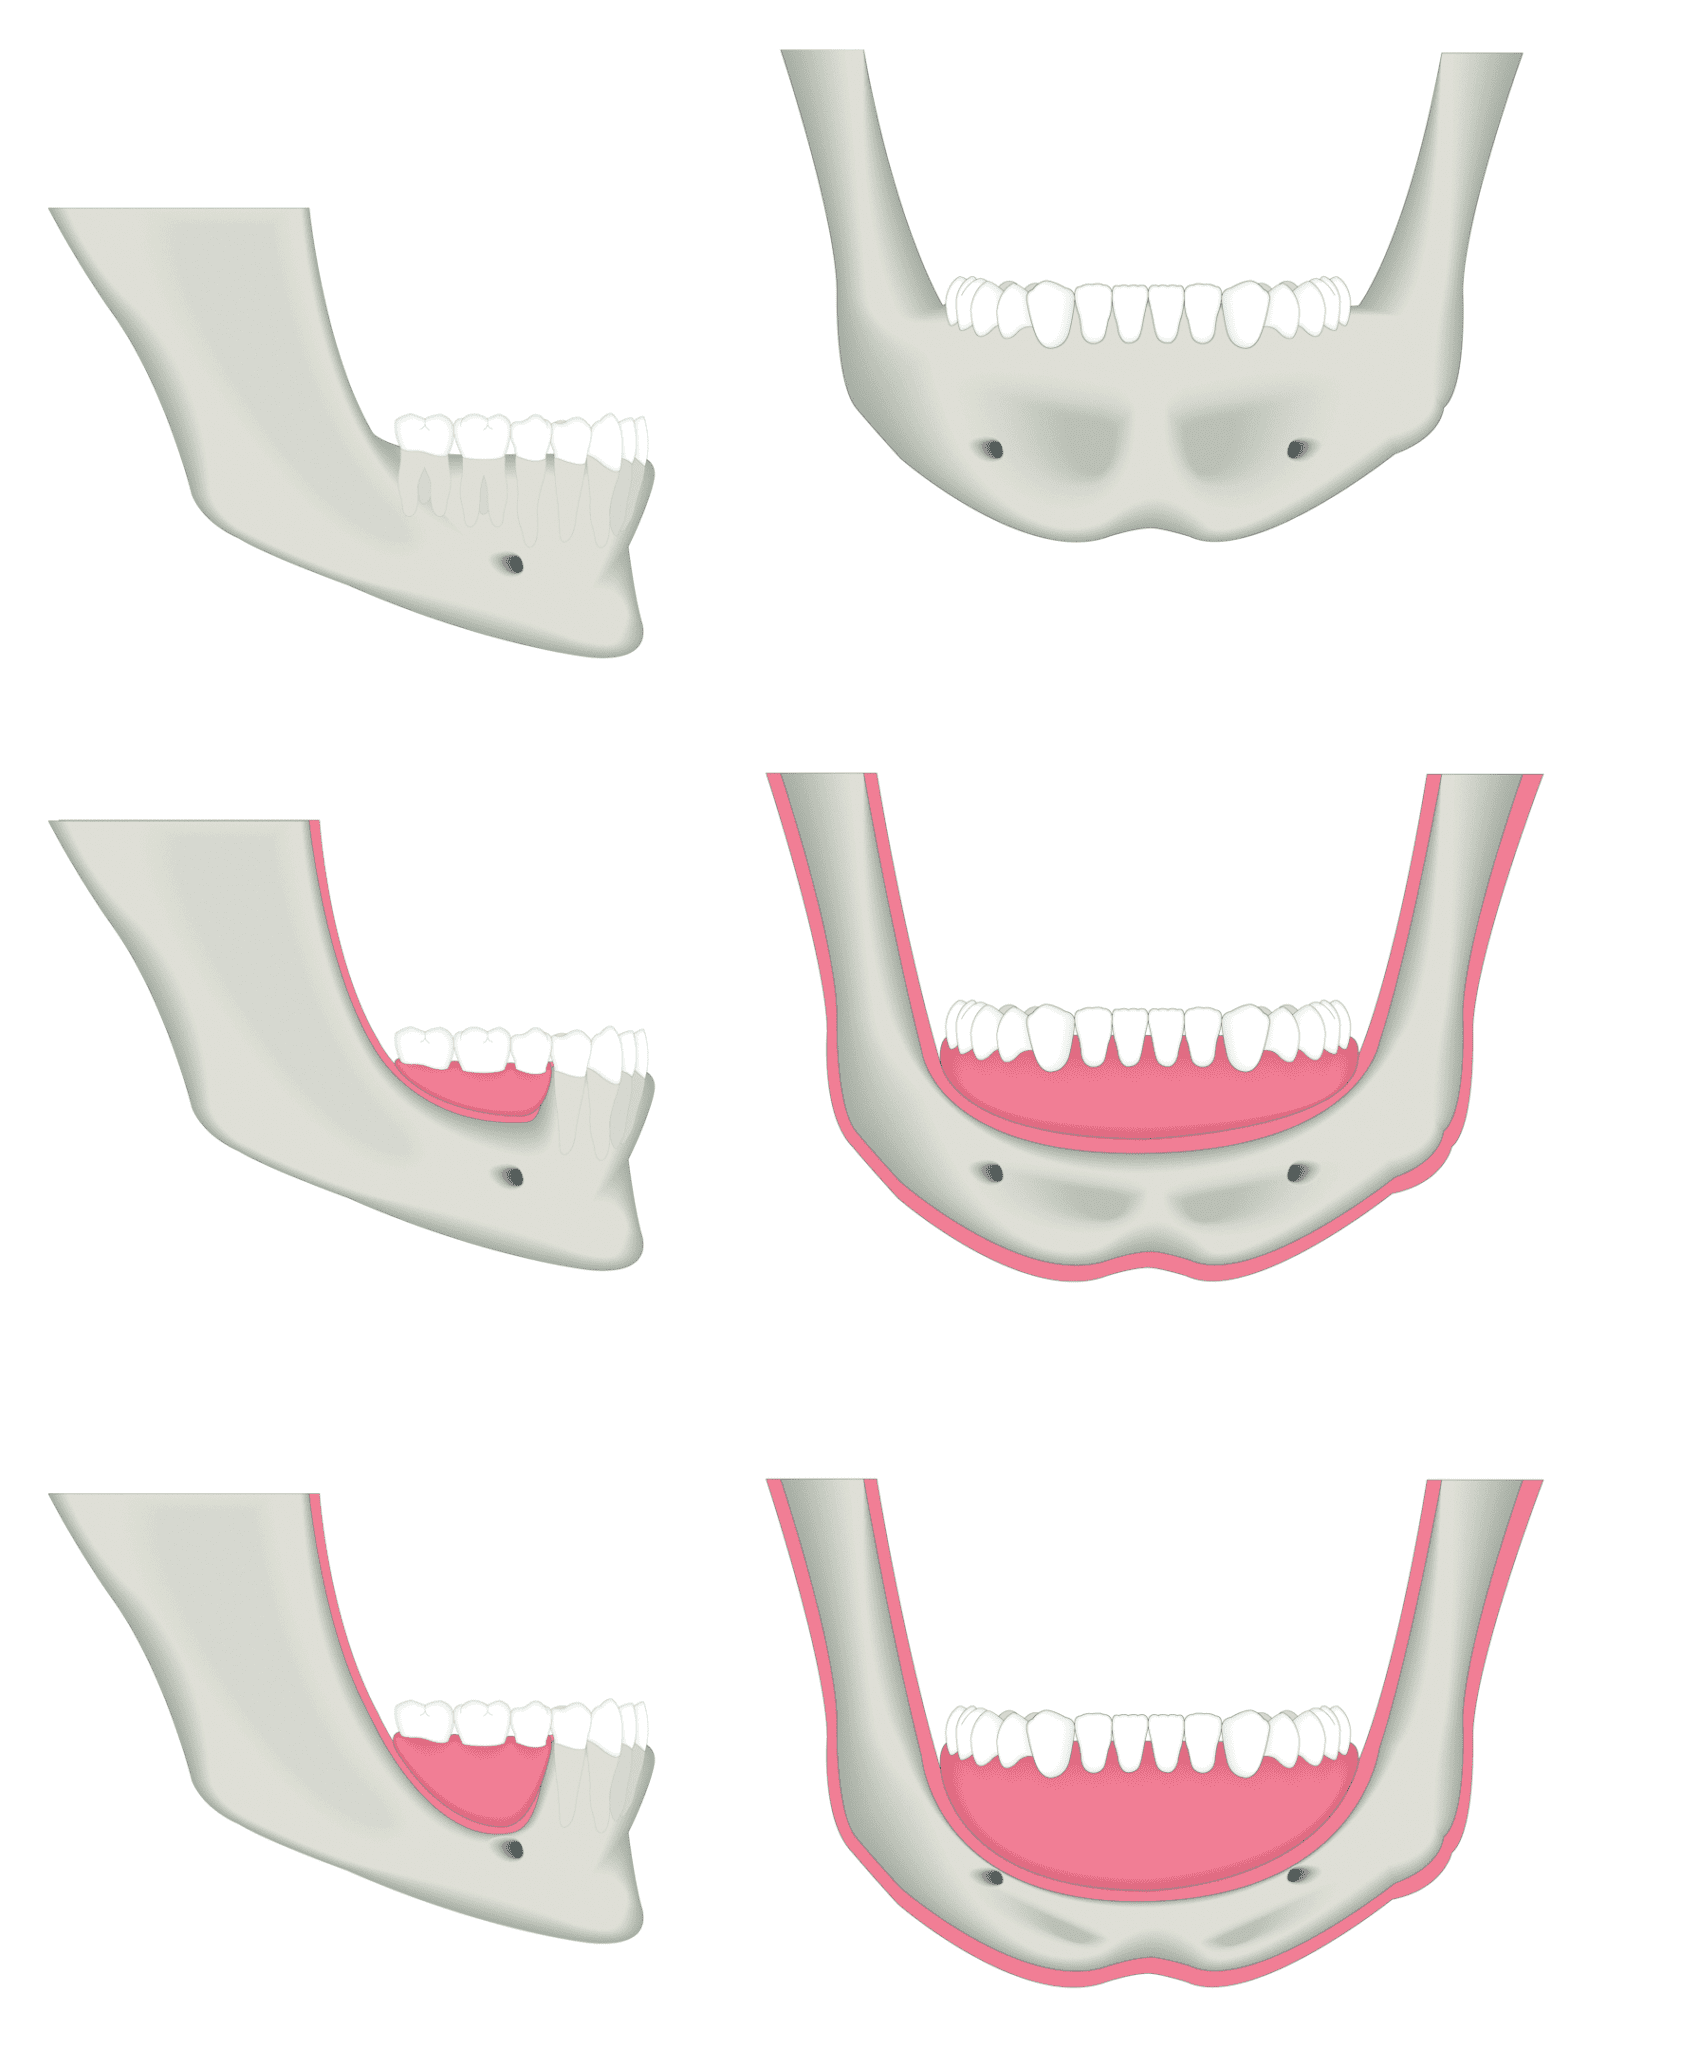 Progressive bone loss with loss of posterior teeth or with loss of all teeth over time.